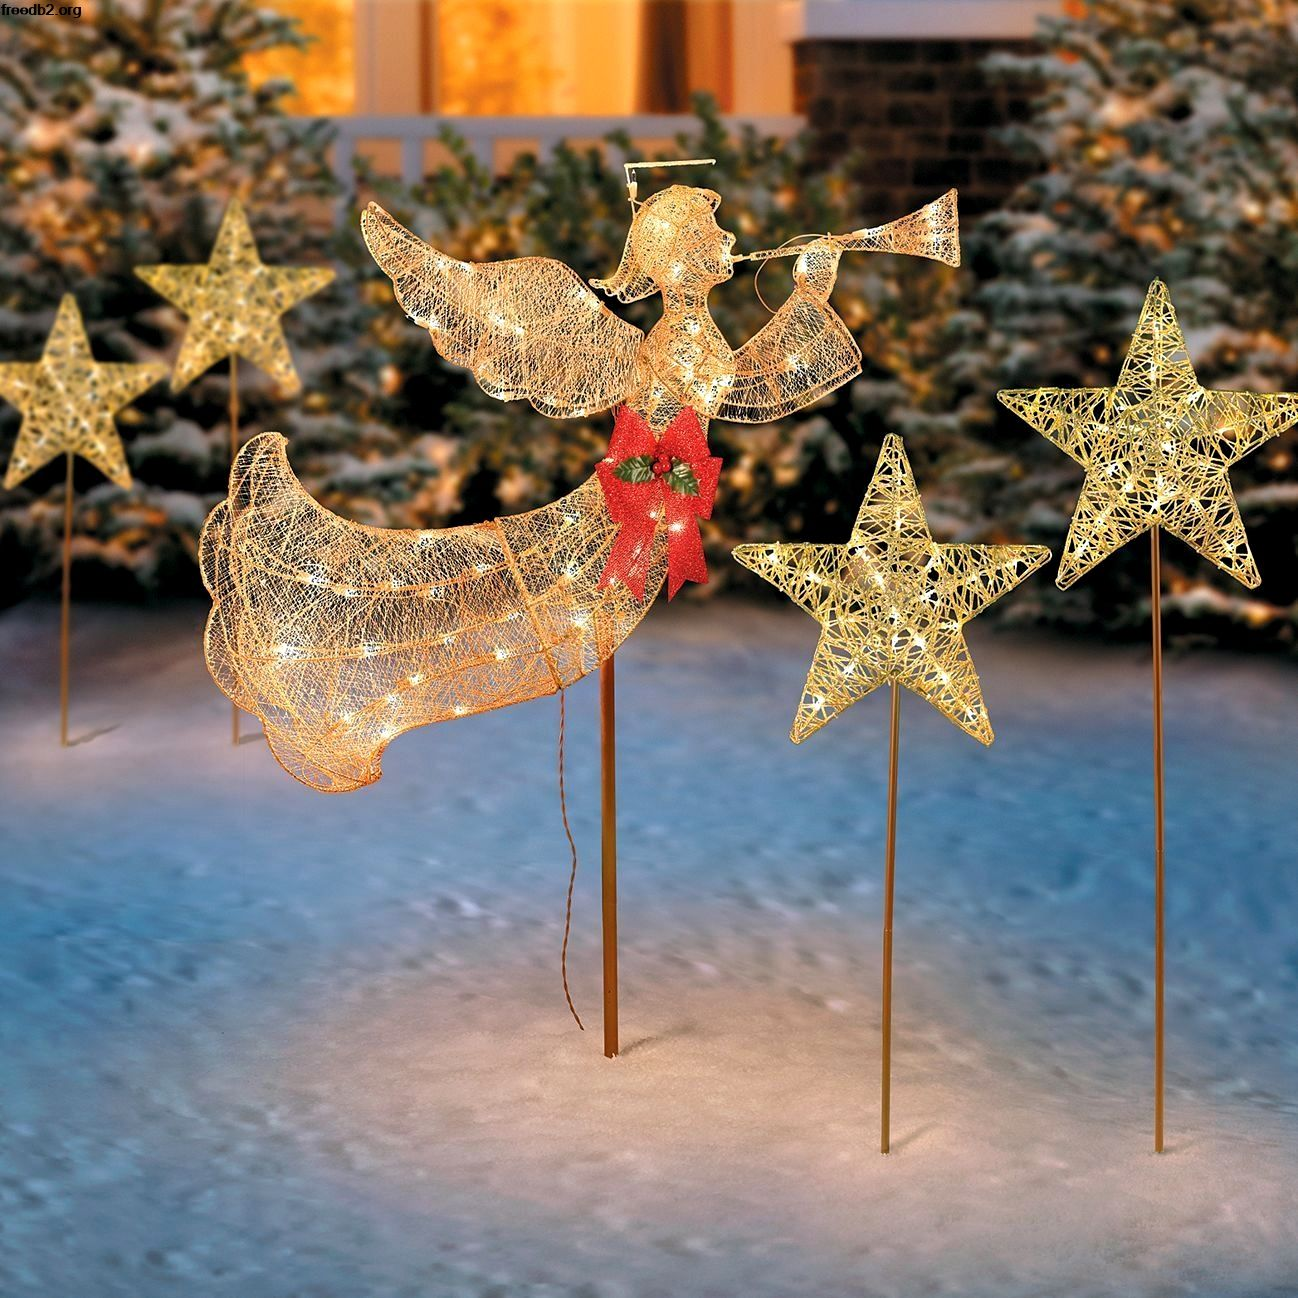 Lighted Angel Outdoor Christmas Decorations Decorationlamp Com Lawn